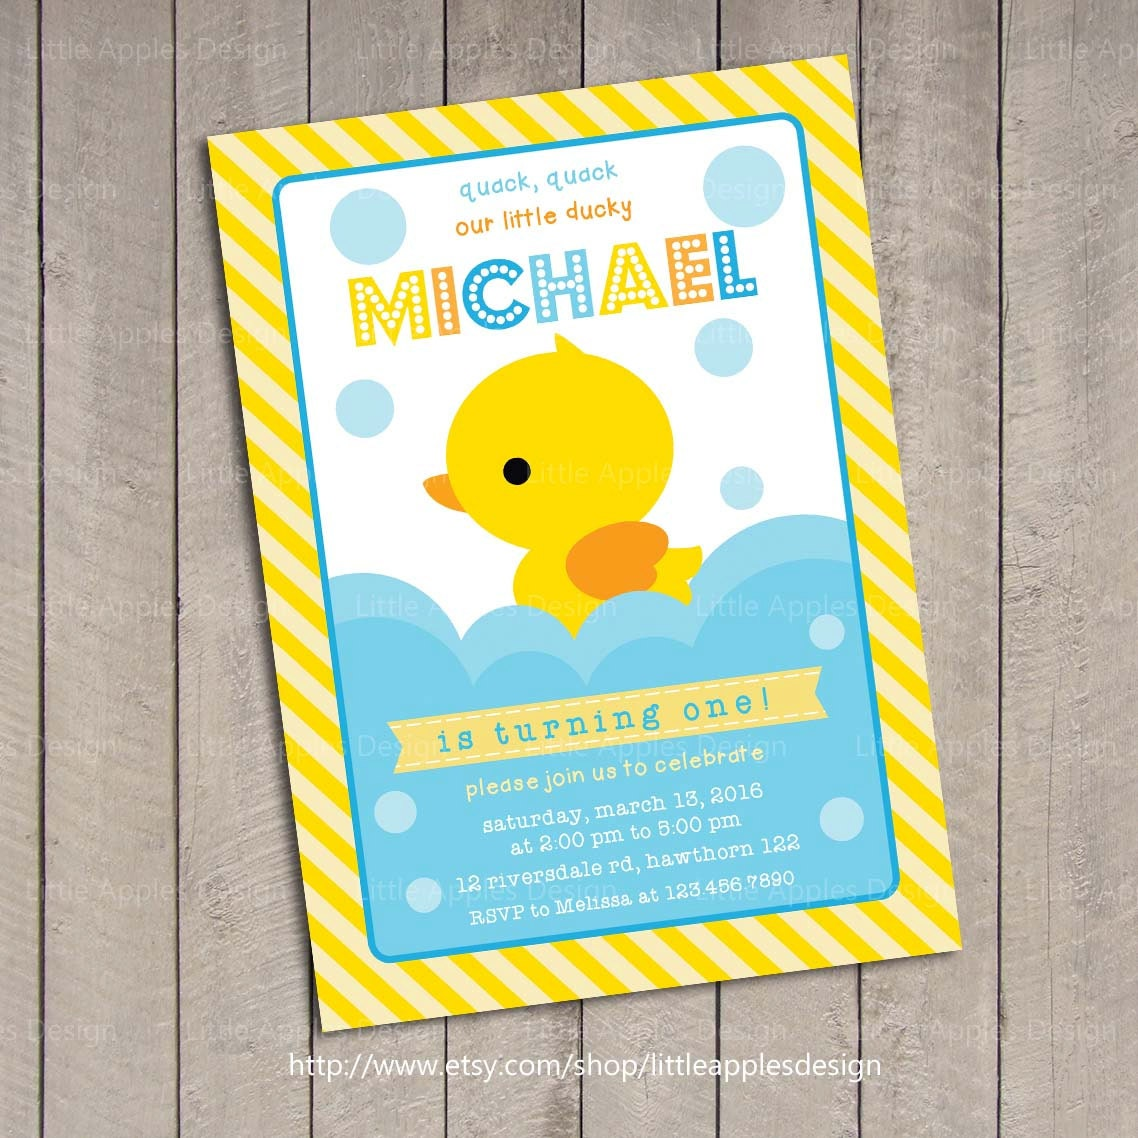 Duck Invitation Rubber Duck invitation Rubber Duck